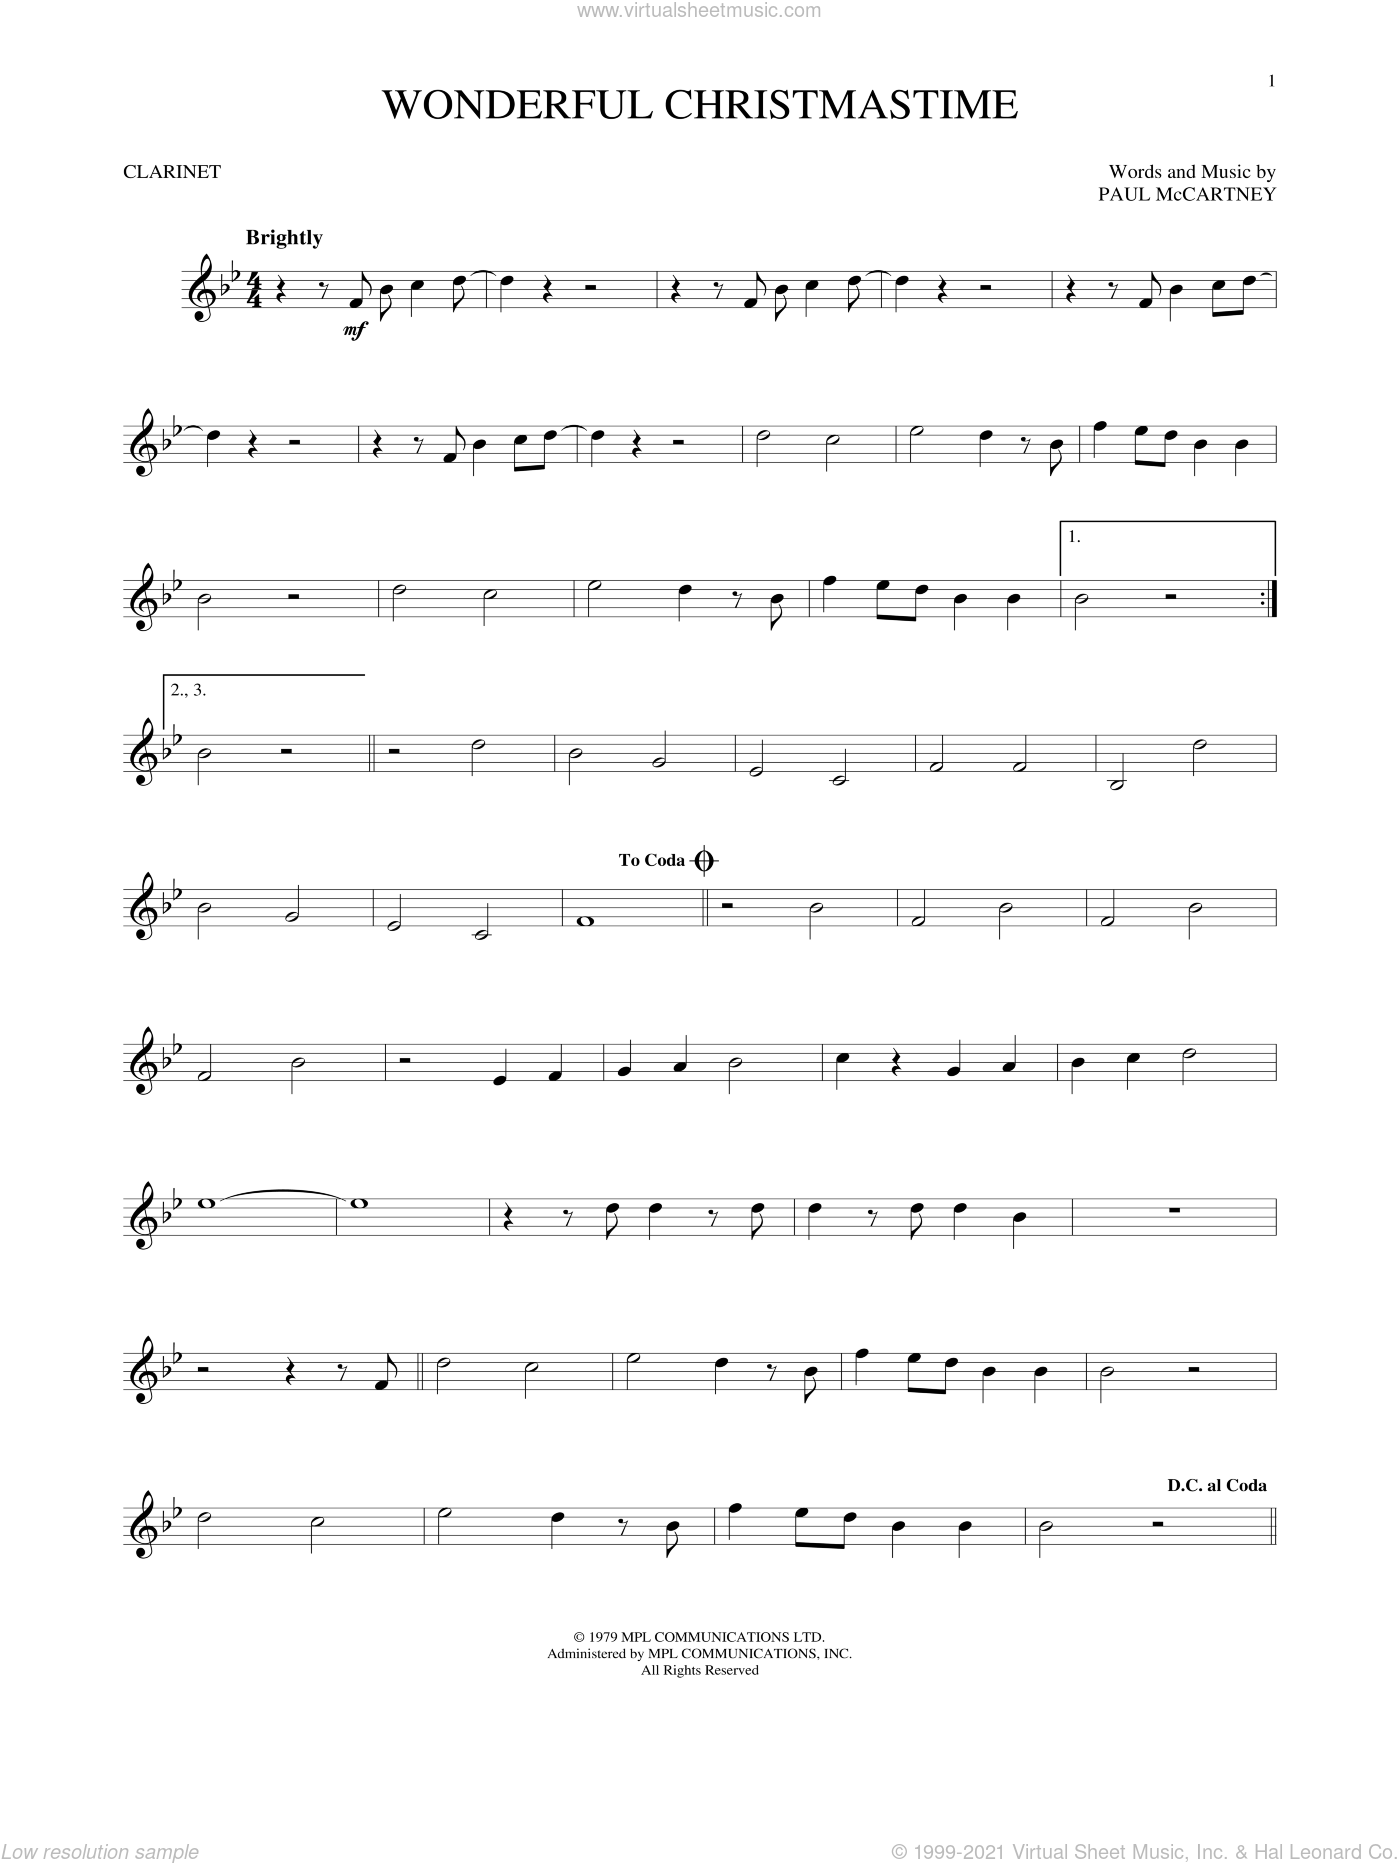 Wonderful Christmastime sheet music for clarinet solo by Paul McCartney, Eli Young Band and Straight No Chaser featuring Paul McCartney, intermediate skill level